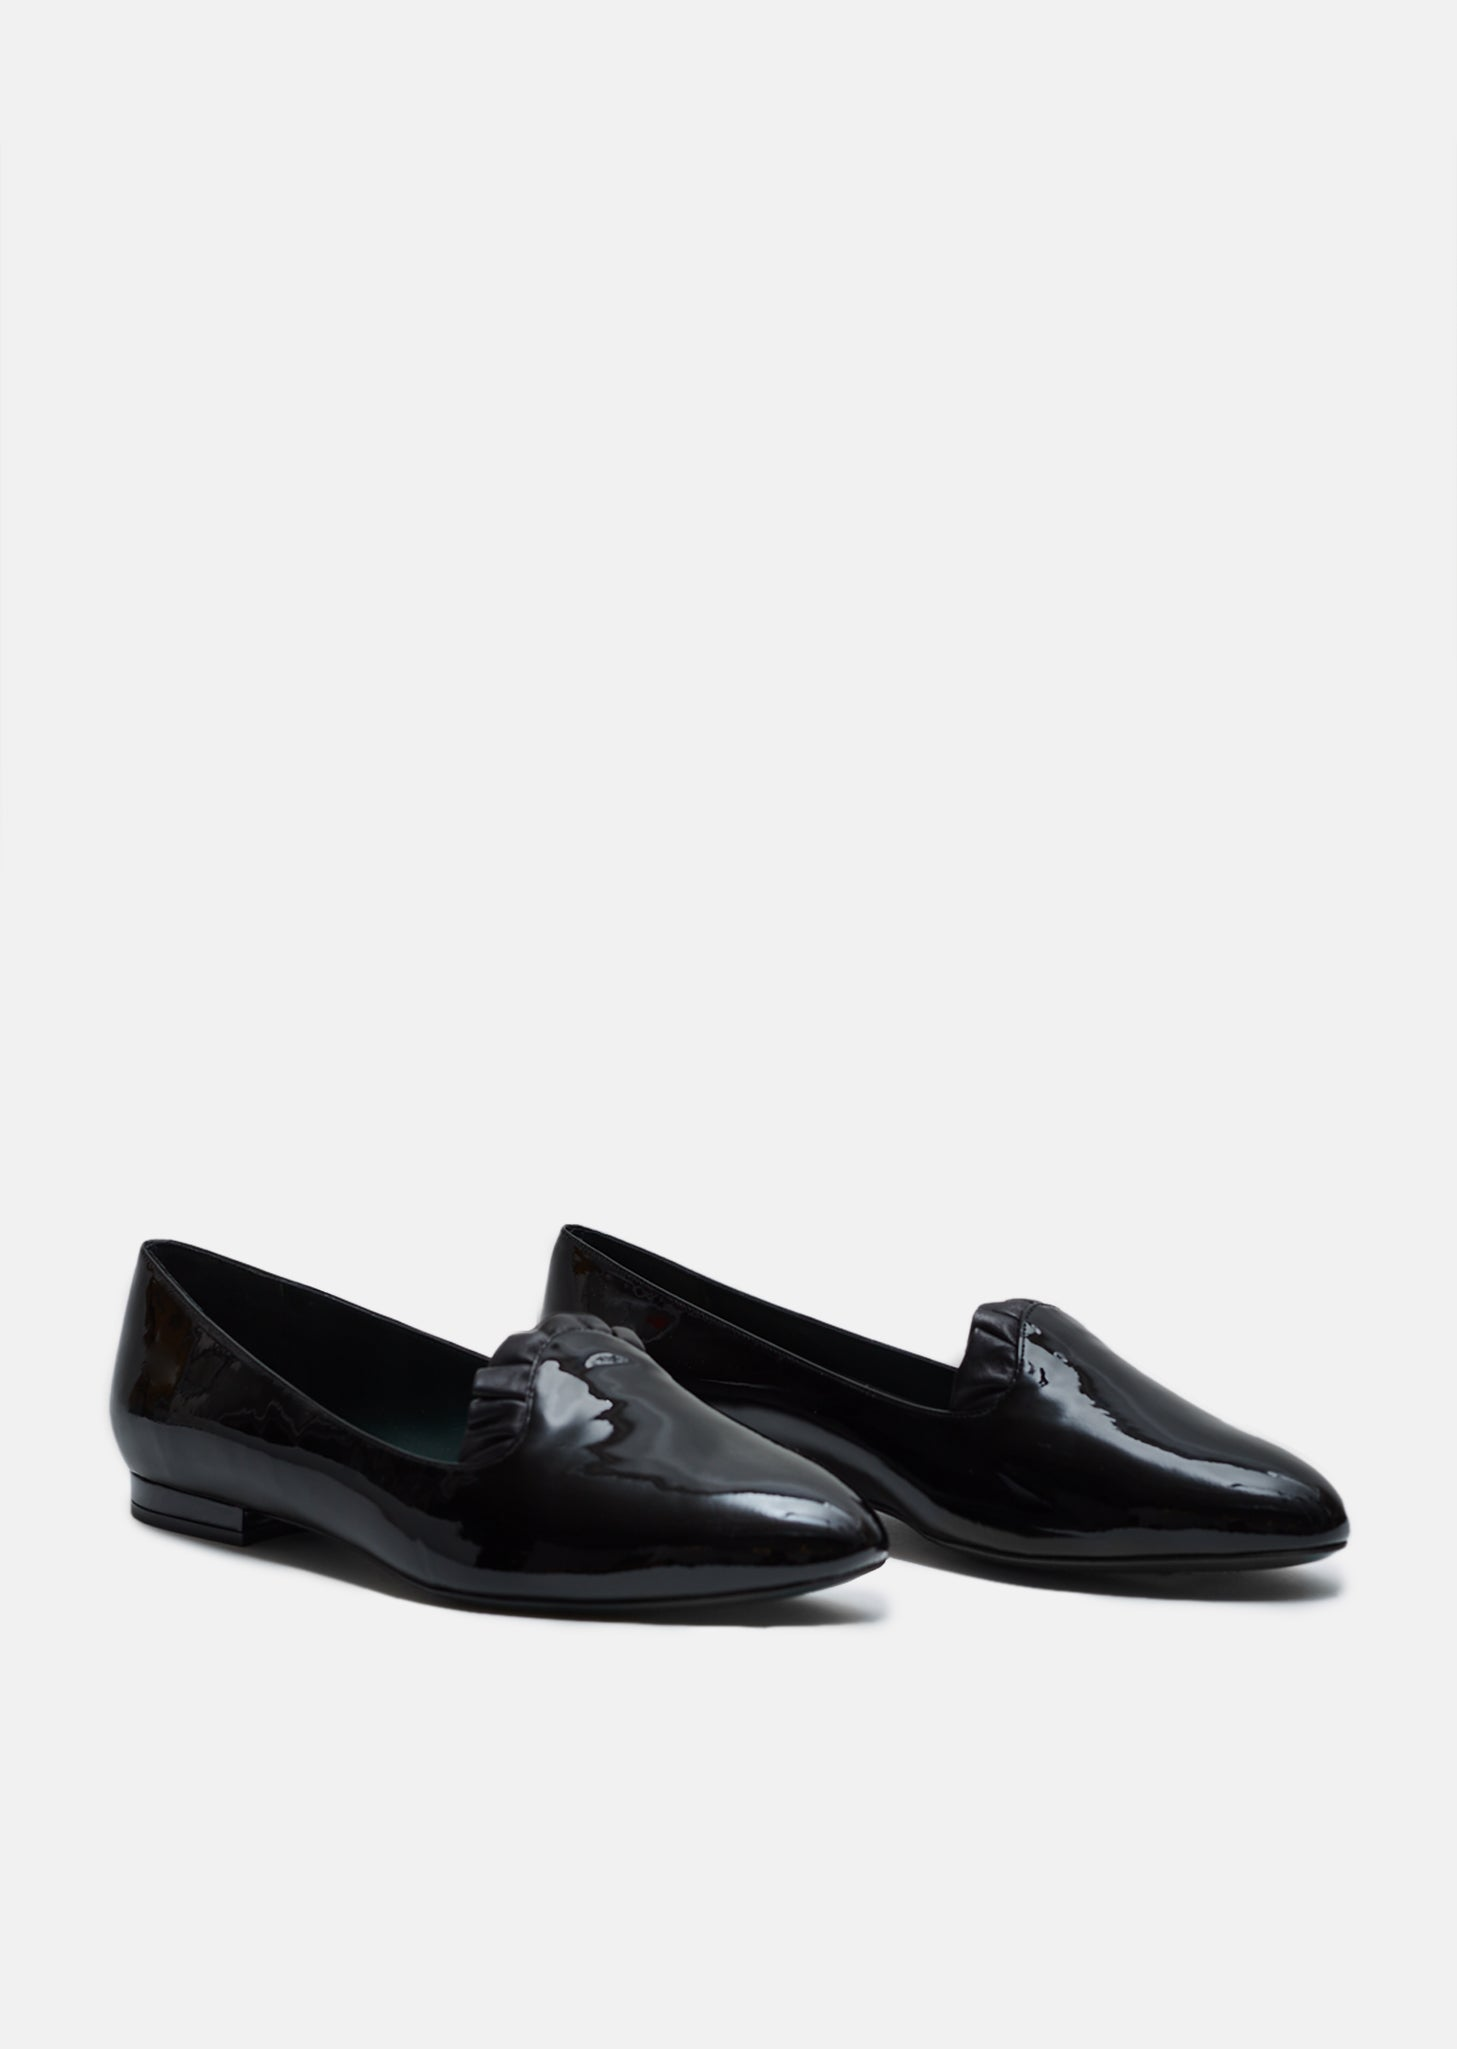 8b6808182de Patent Leather Loafers by Mulberry- La Garçonne